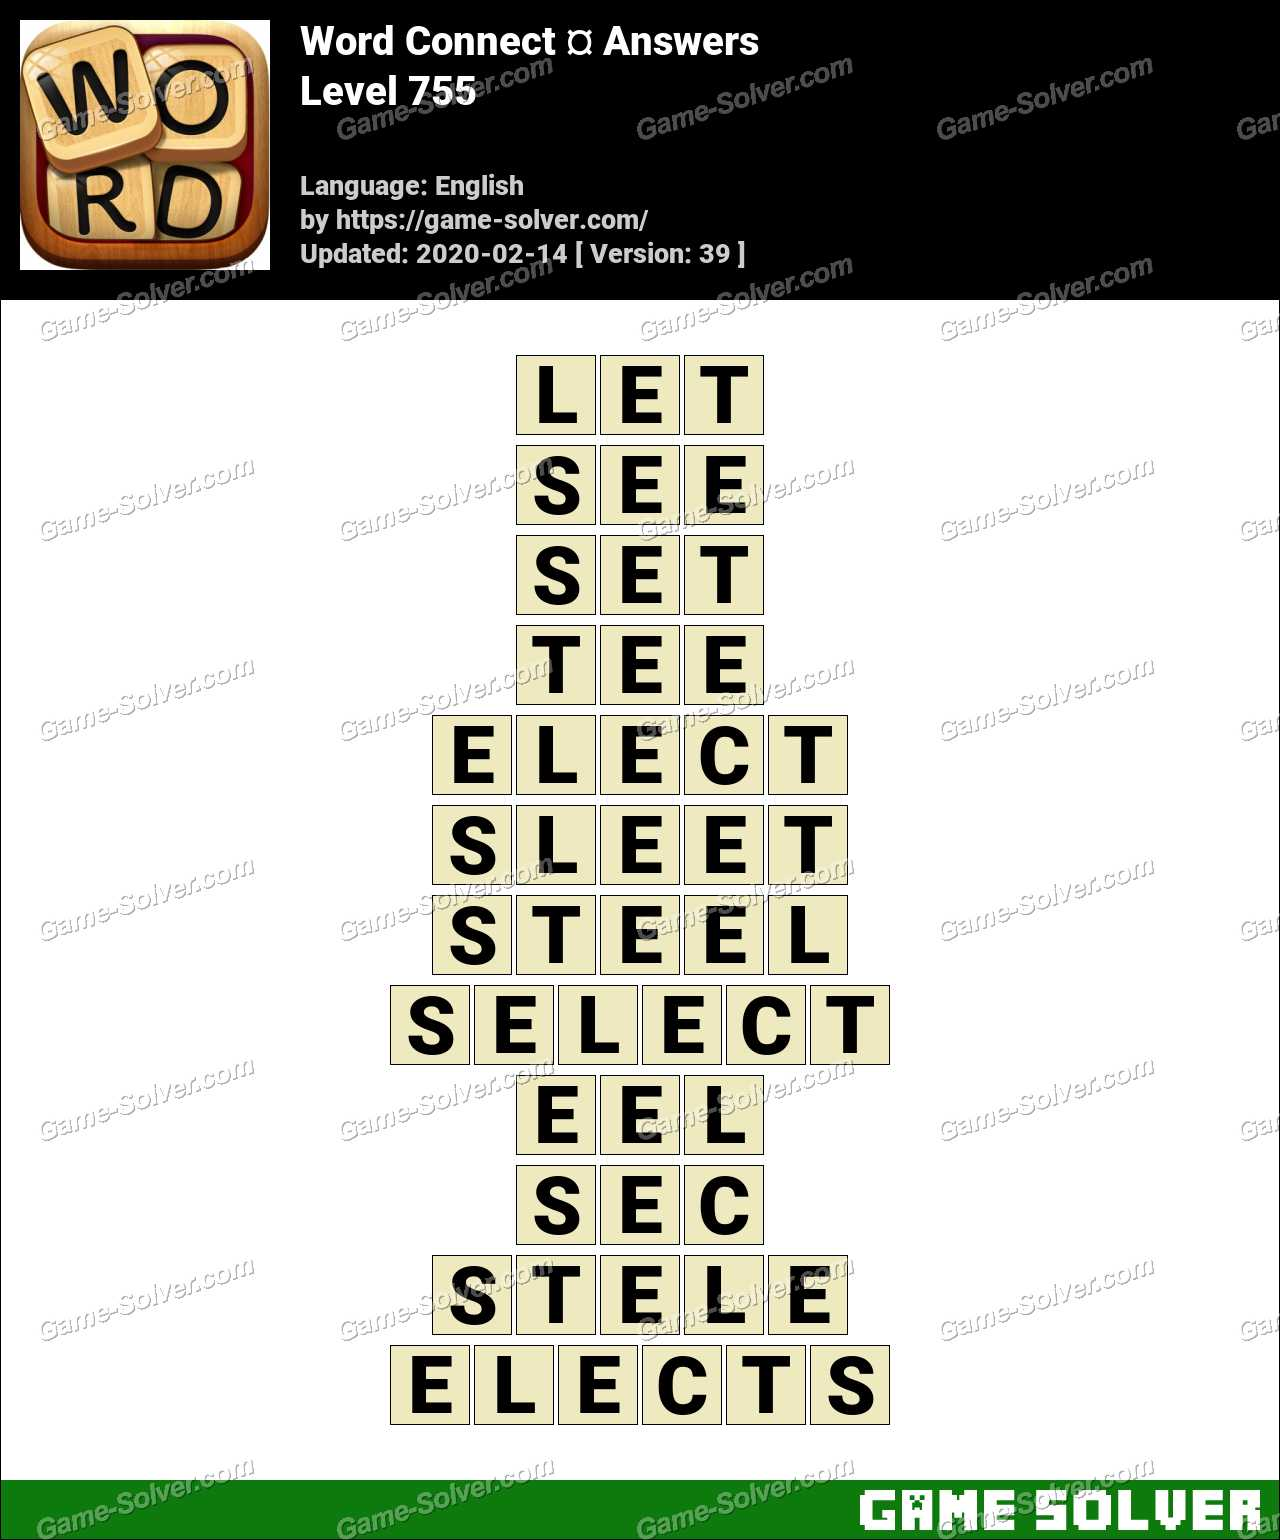 Word Connect Level 755 Answers